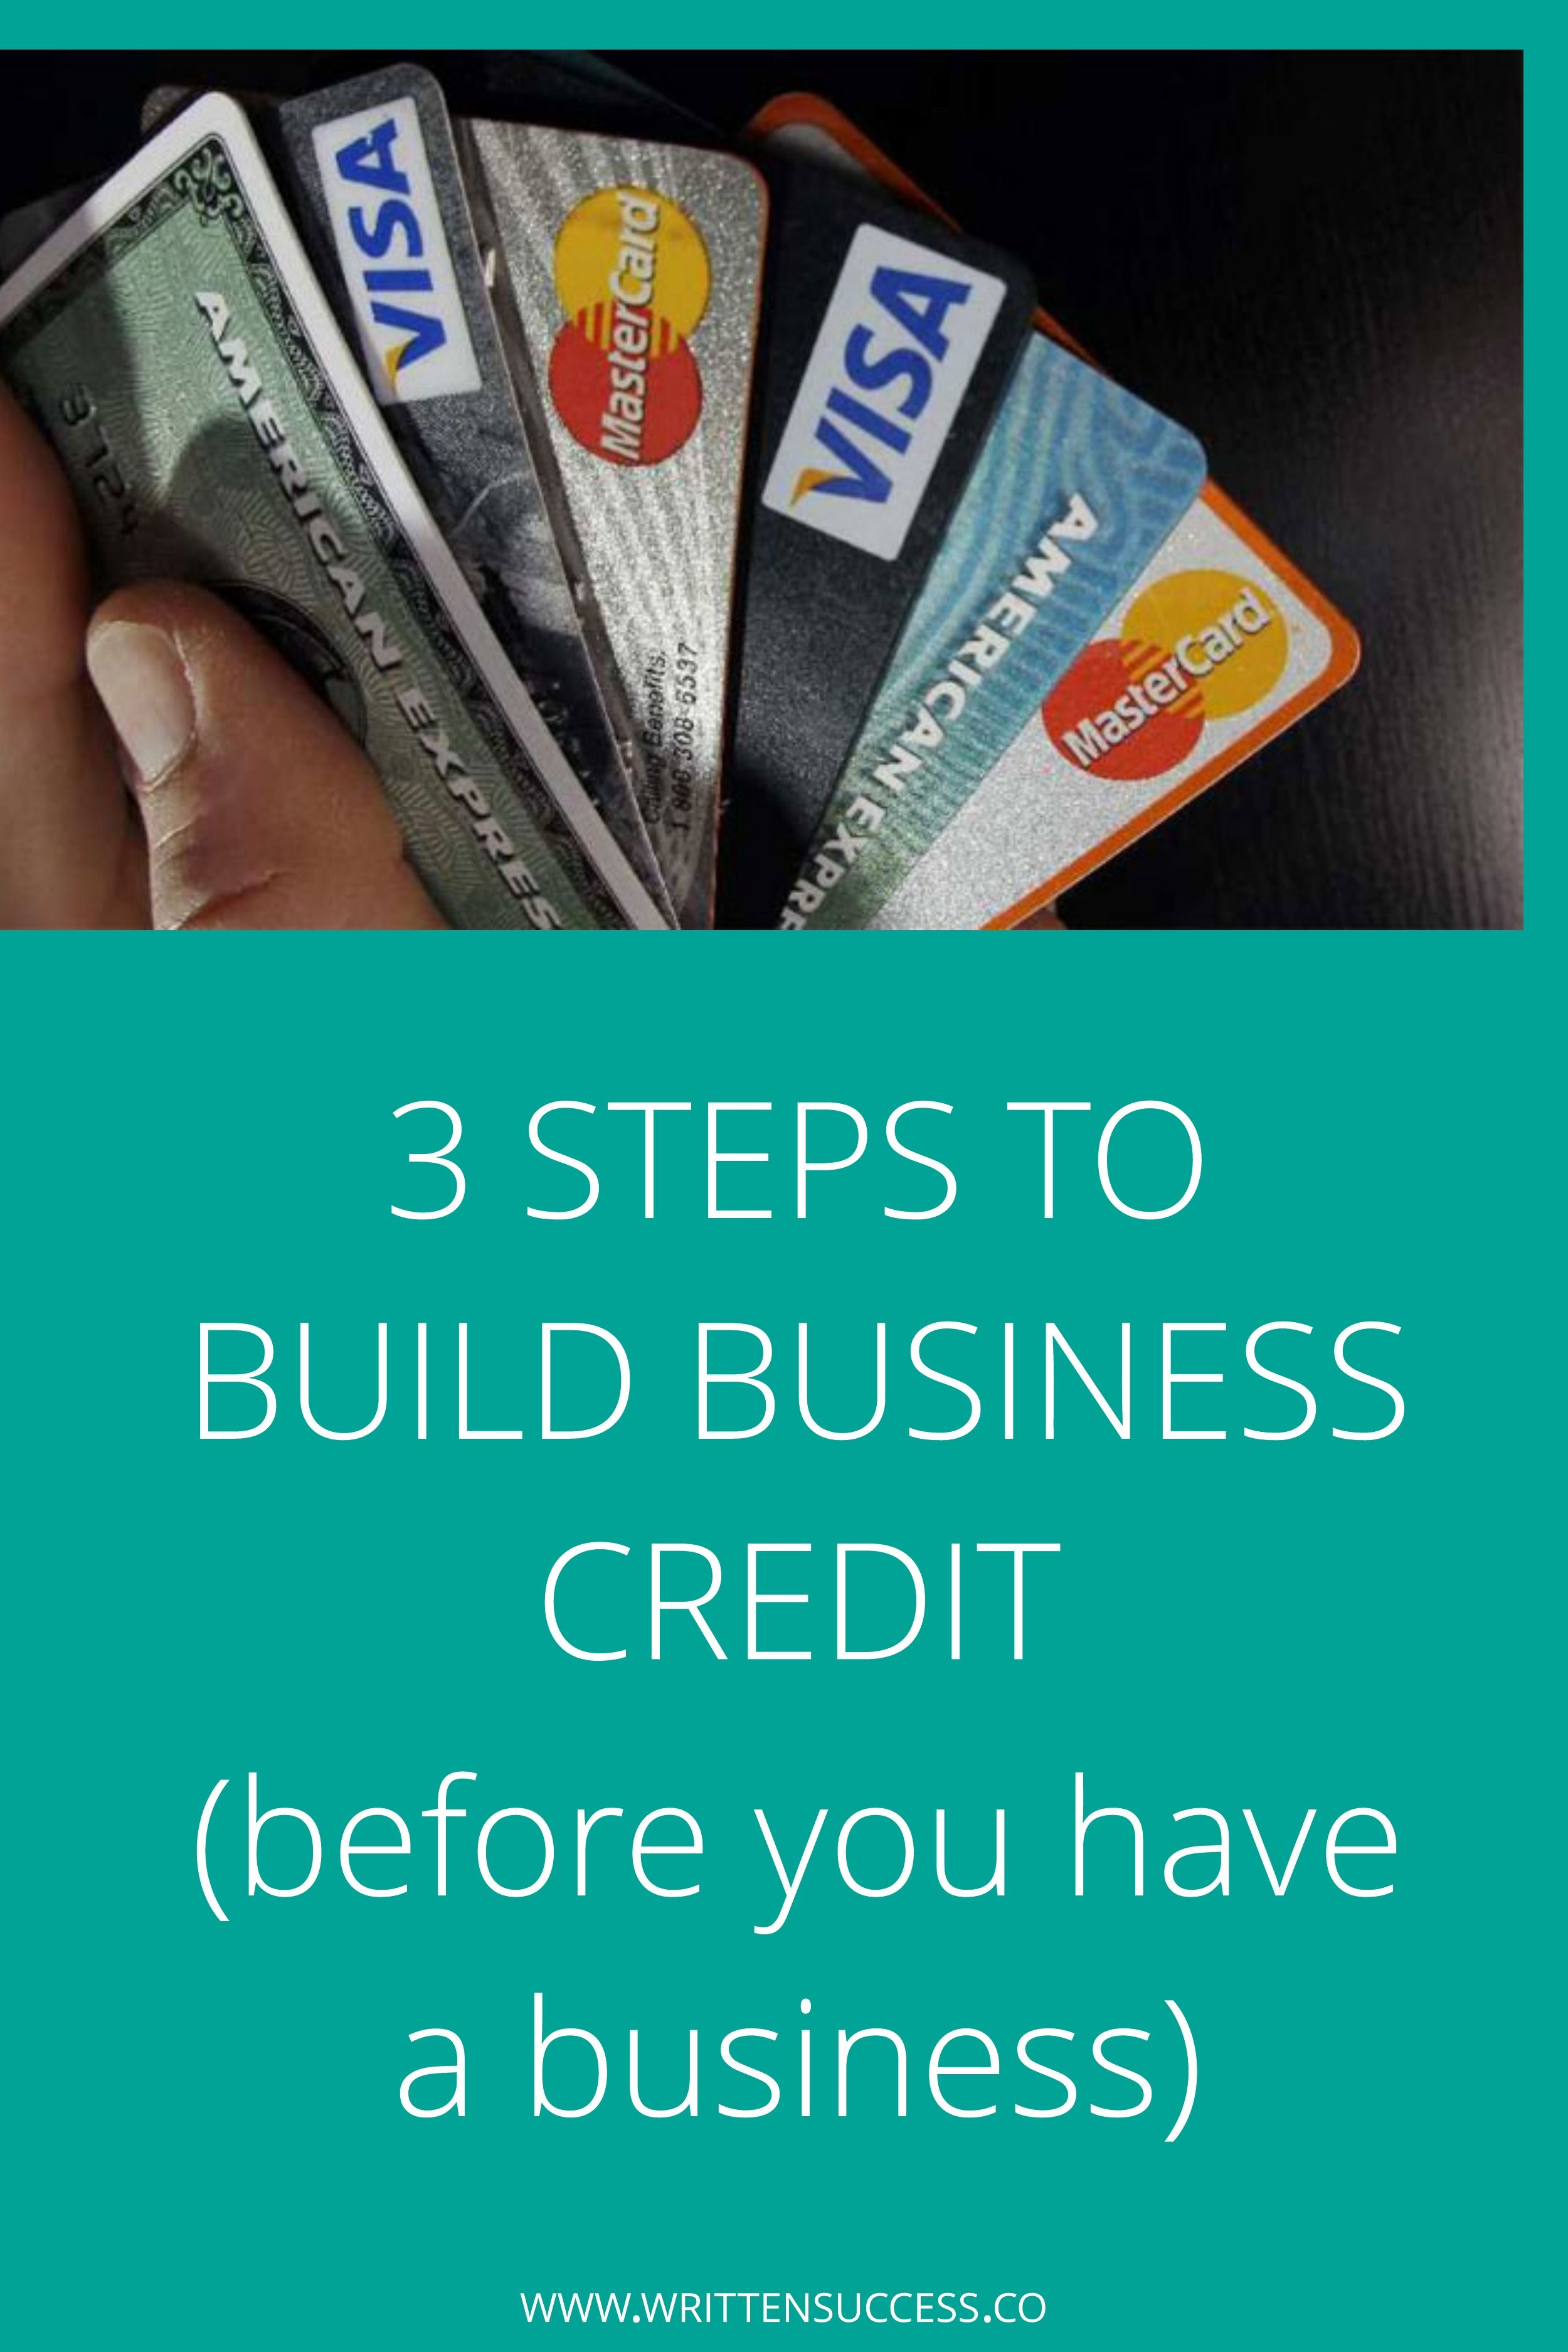 3 steps to build business credit before you have a business 3 steps to build business credit before you have a business business credit colourmoves Choice Image